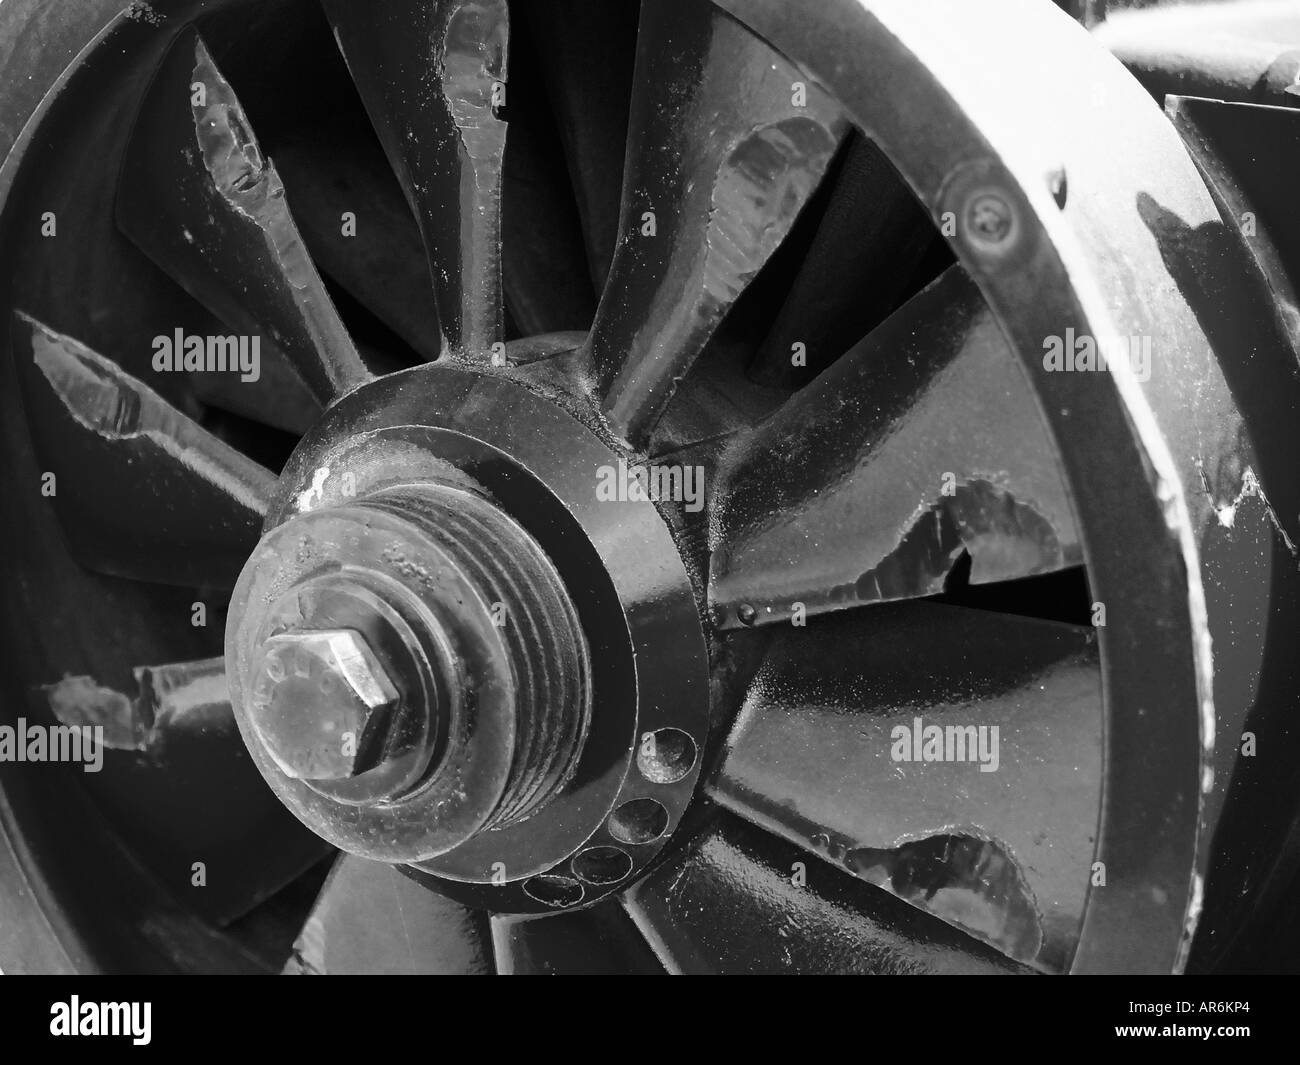 Close view of a large industrial turbine with cracked fins in black and white. Stock Photo